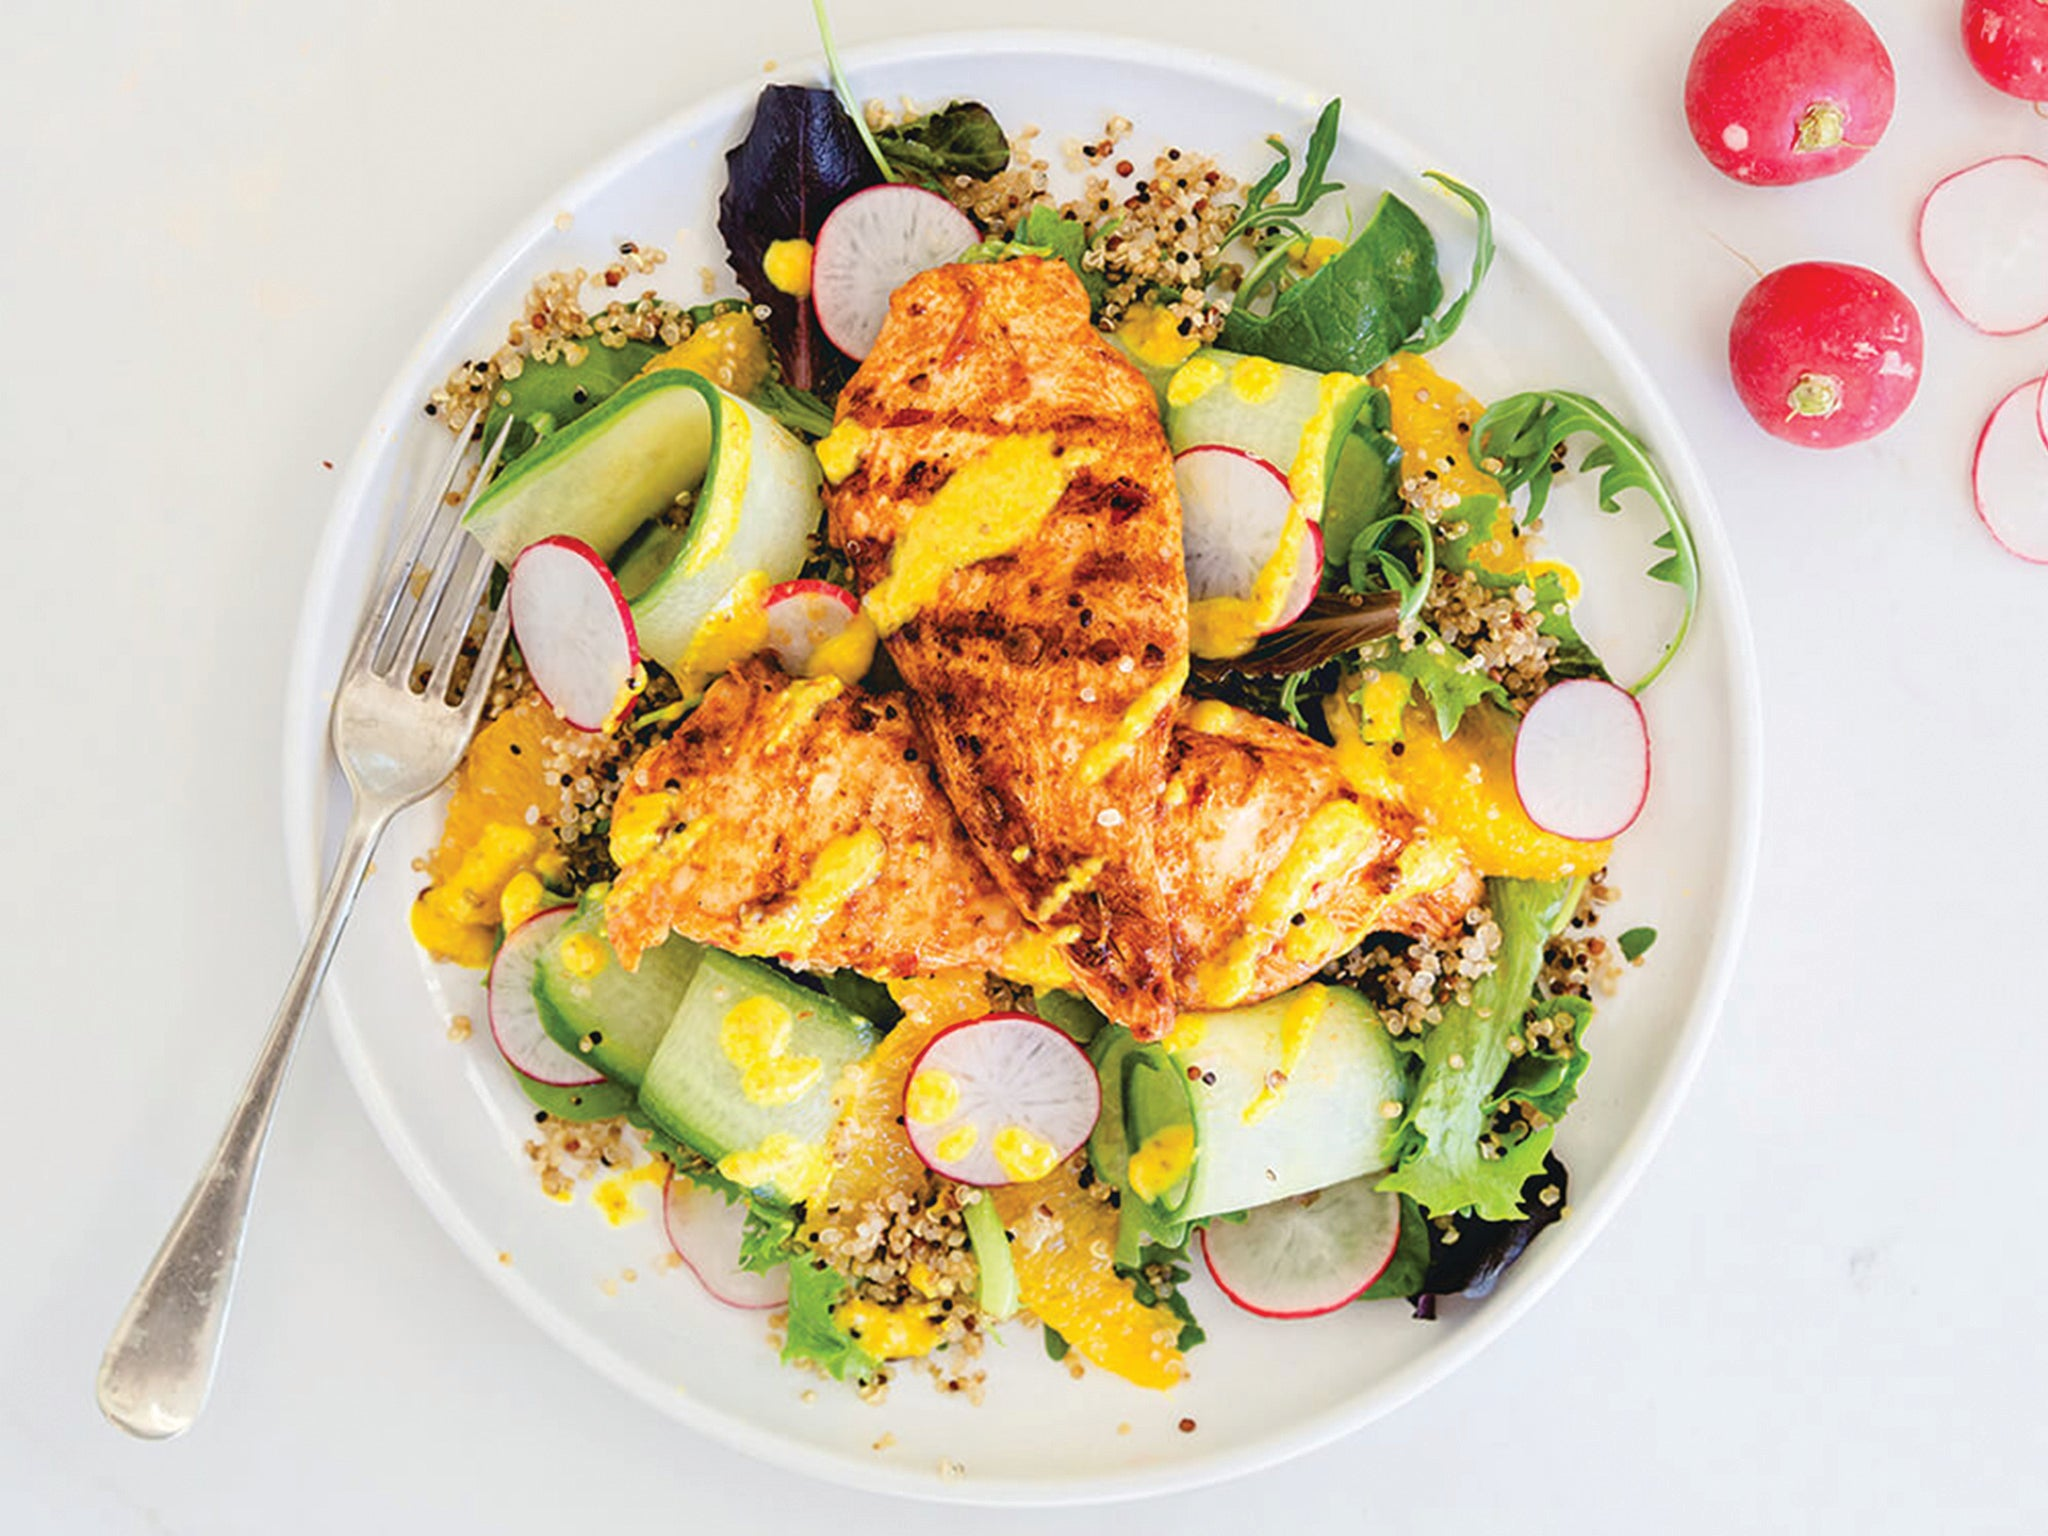 How to make harissa chicken, cucumber ribbons and orange 1